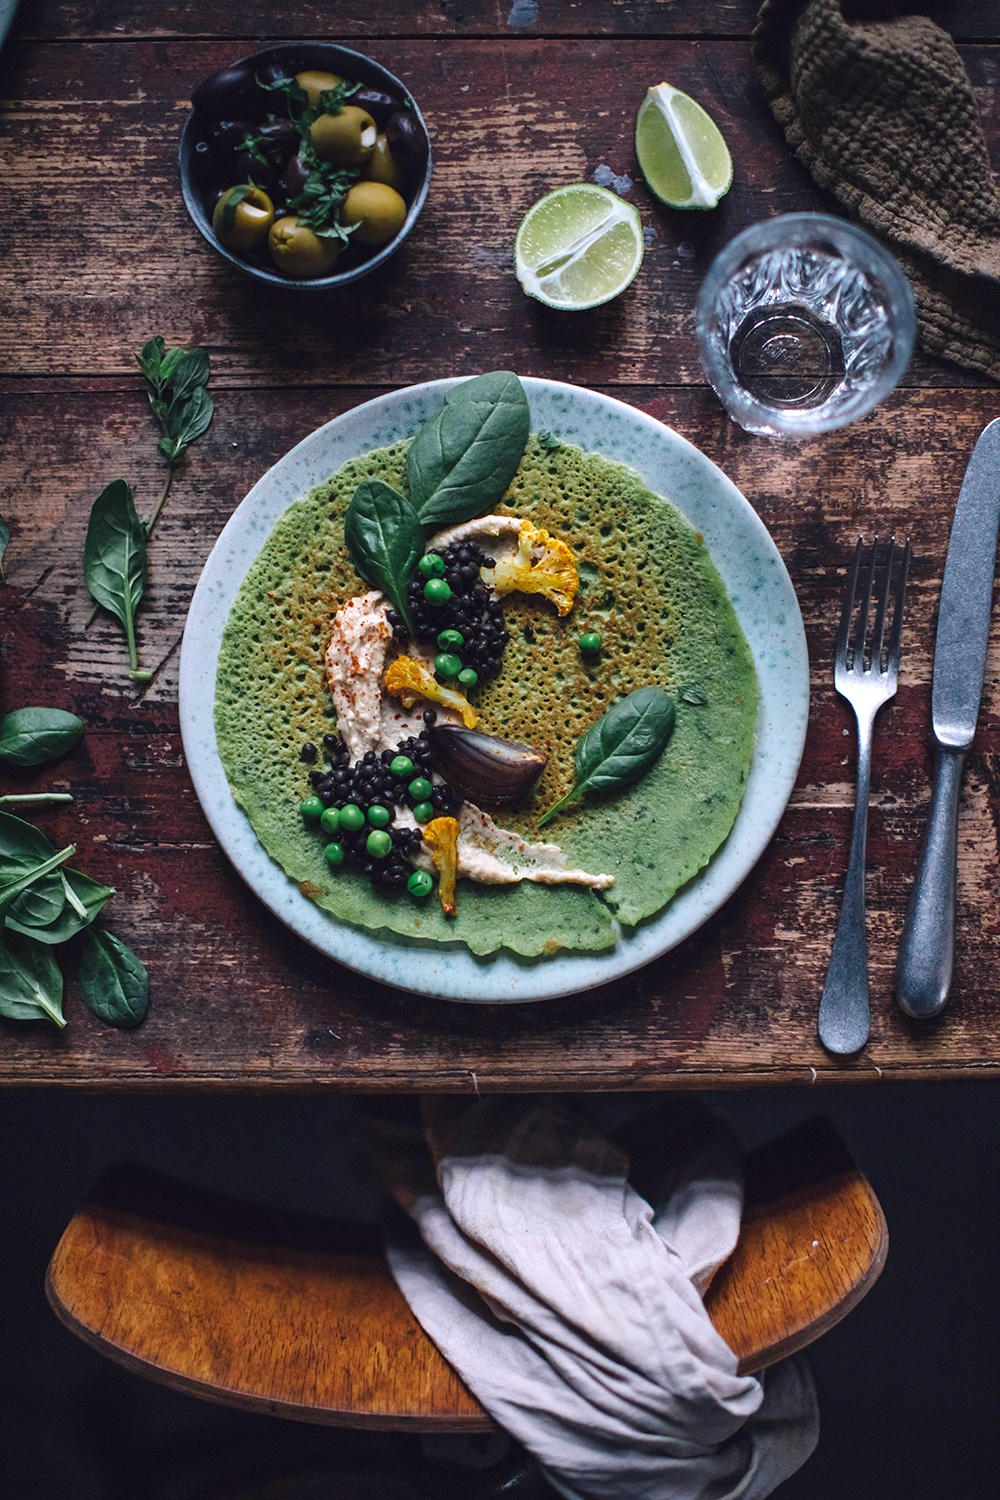 Gluten-free Peas Basil Crêpes with Hummus, lentils and roasted cauliflower